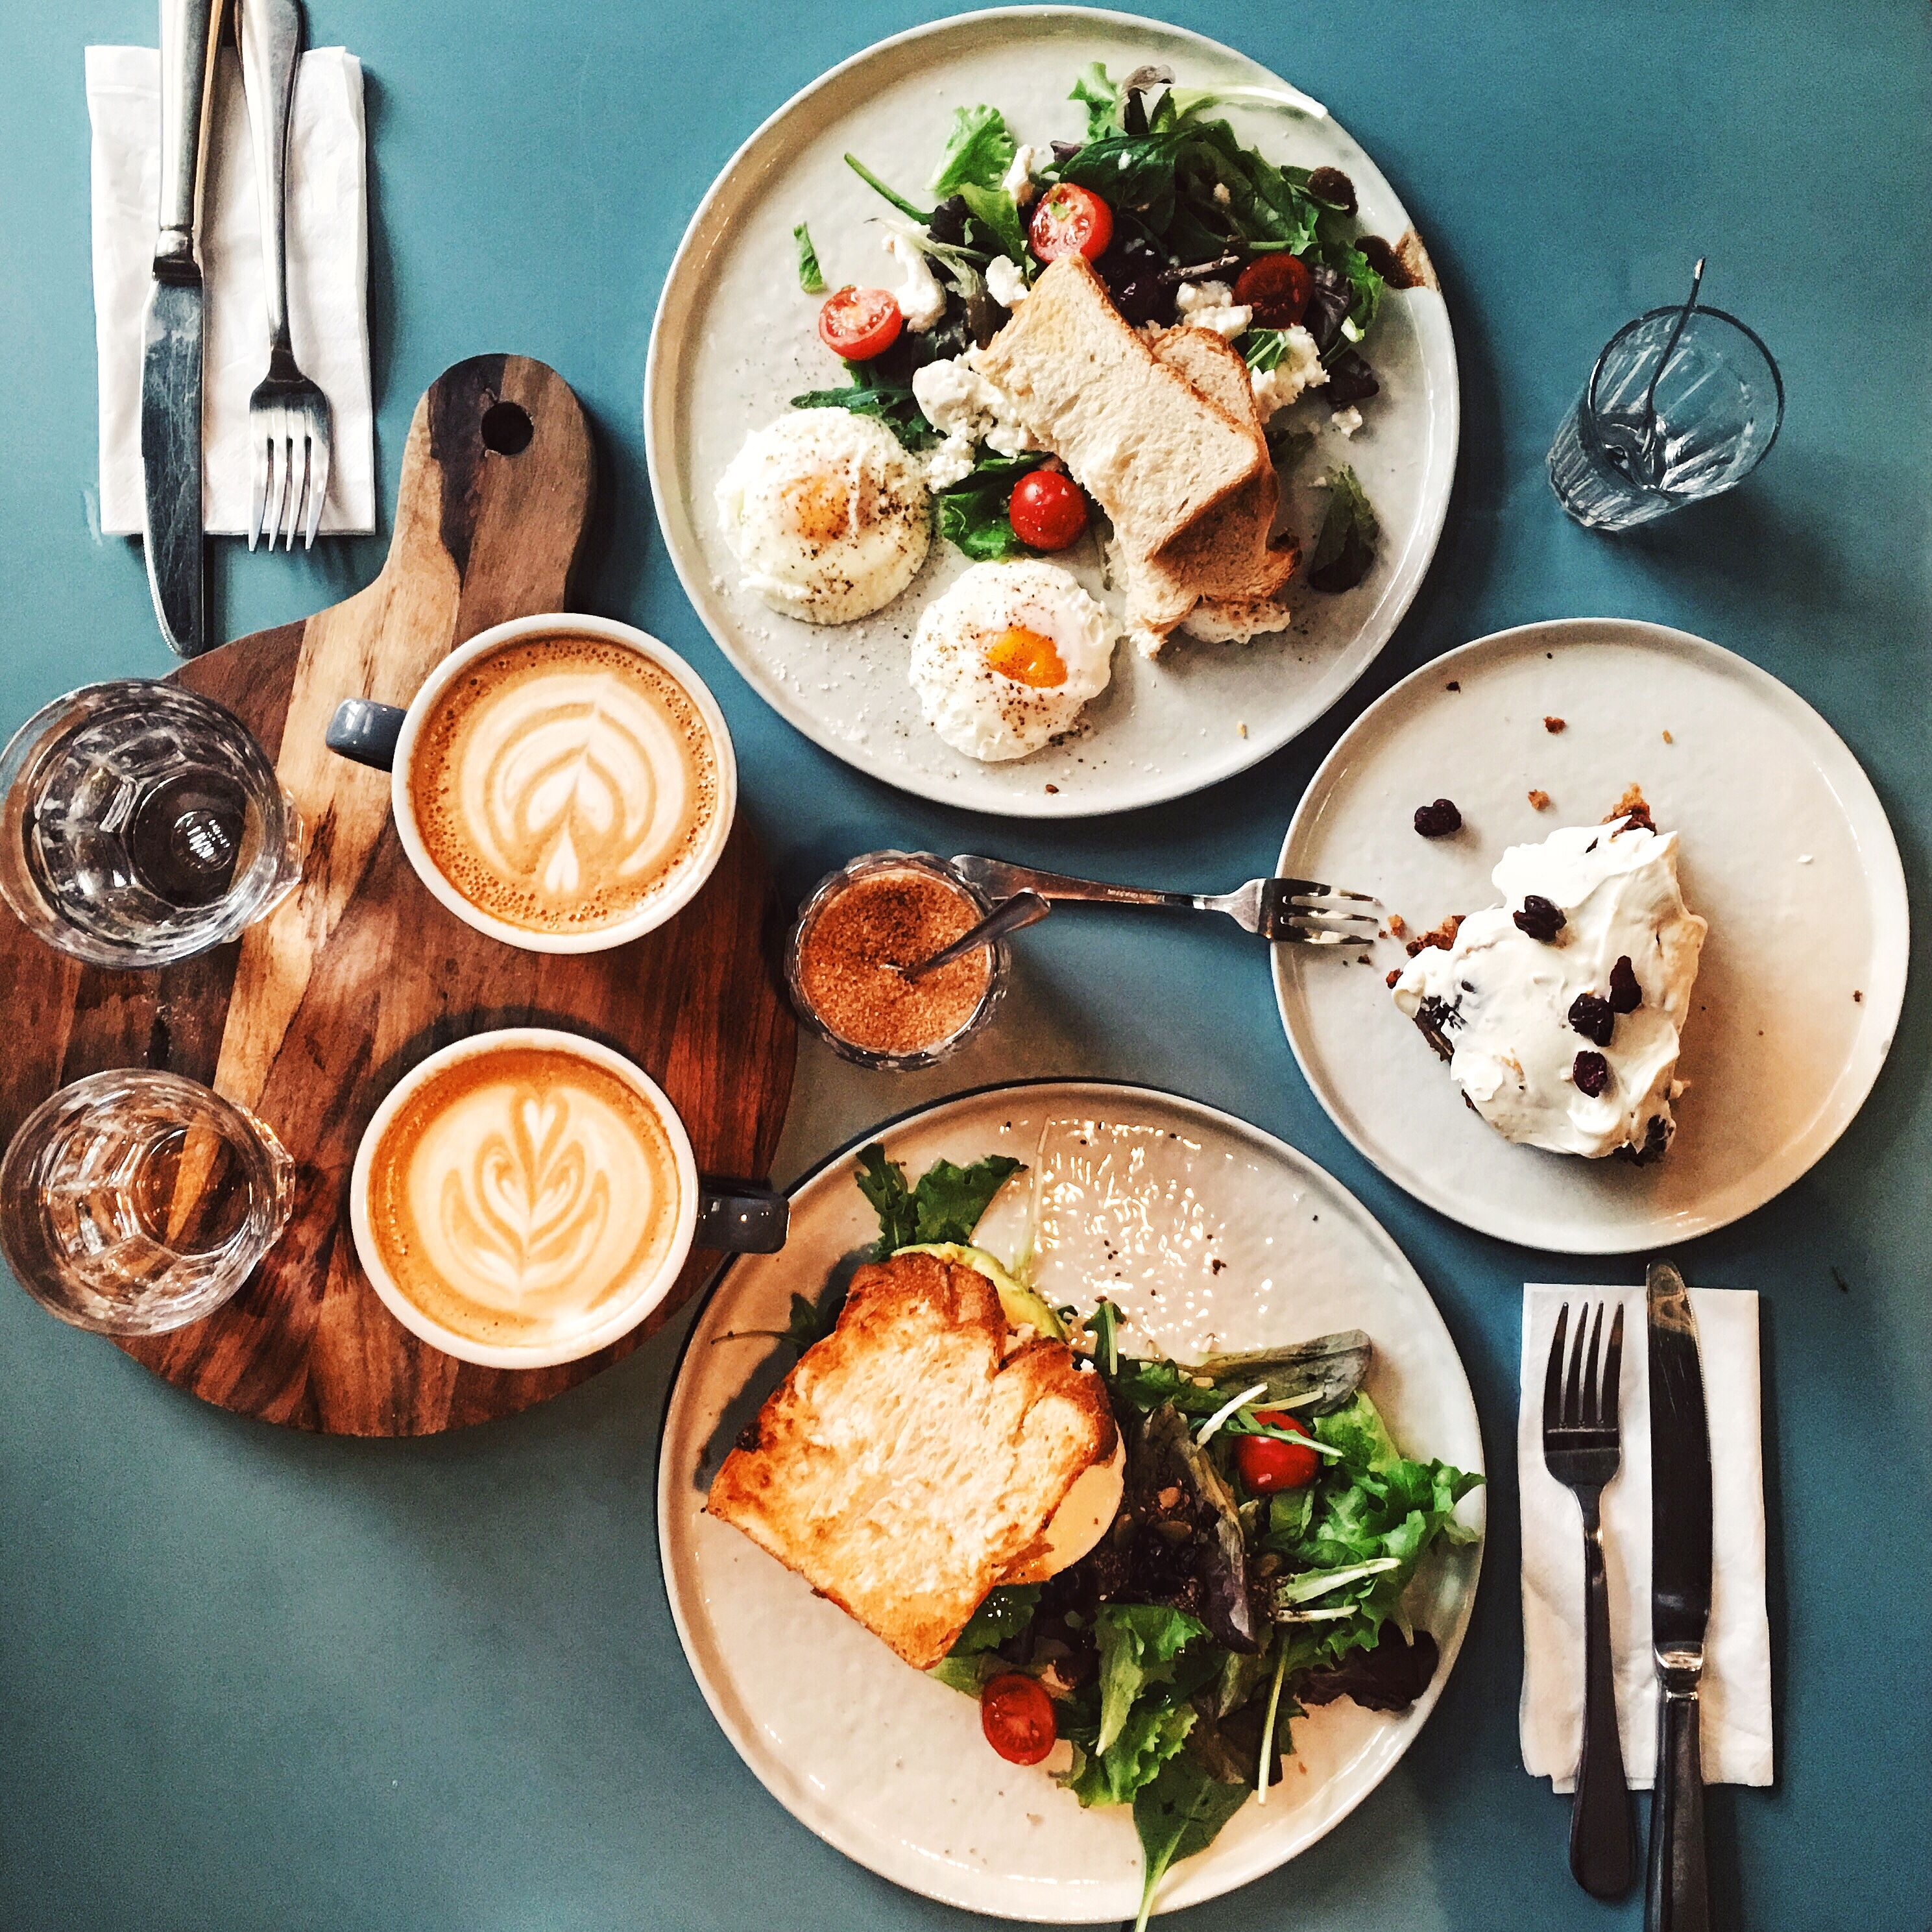 Will not eating breakfast make you lose weight